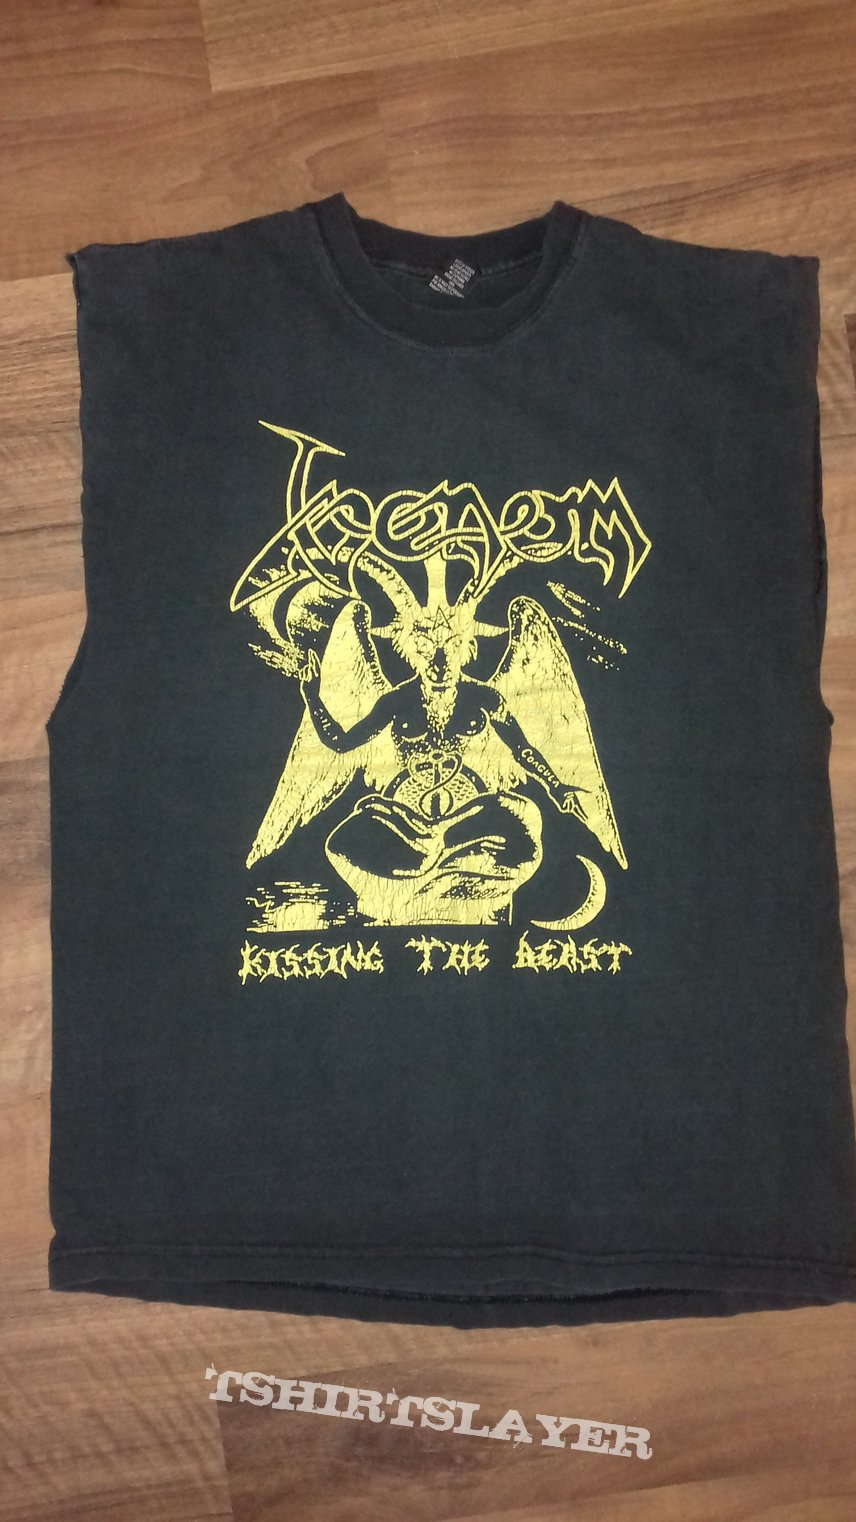 Vintage Venom - Kissing the Beast shirt